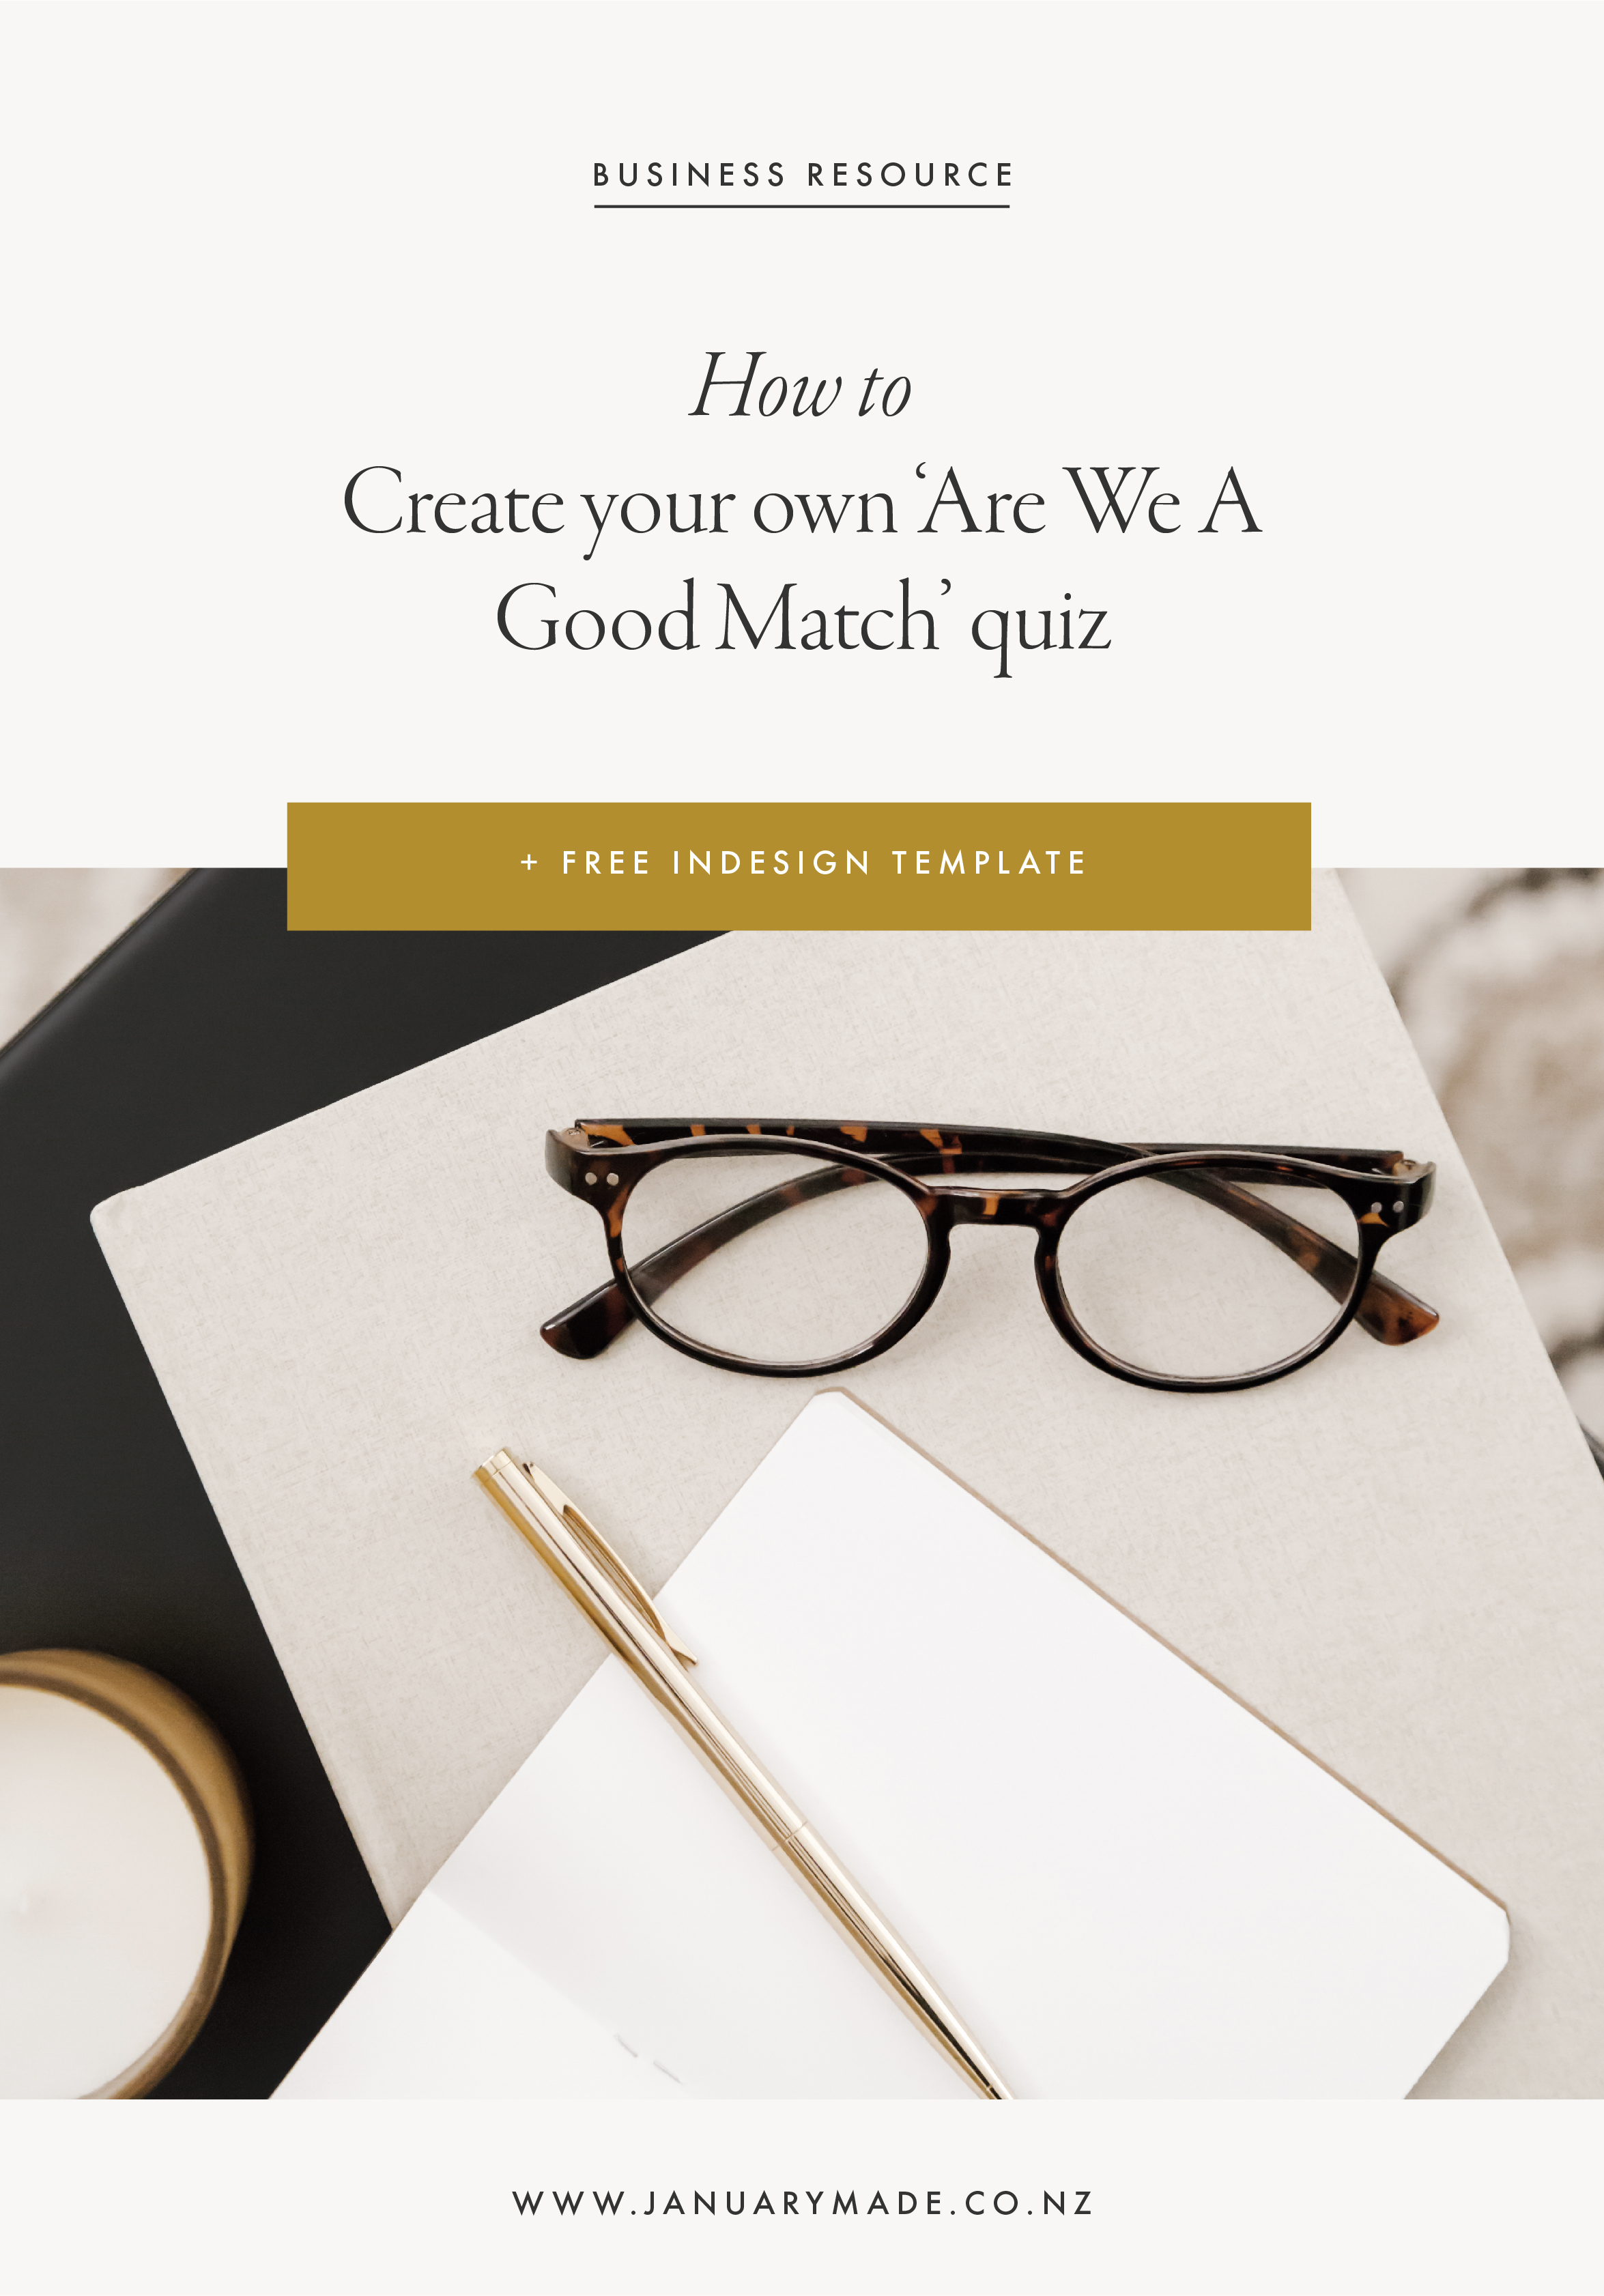 How to create an 'are we a good match' quiz + FREE Indesign template